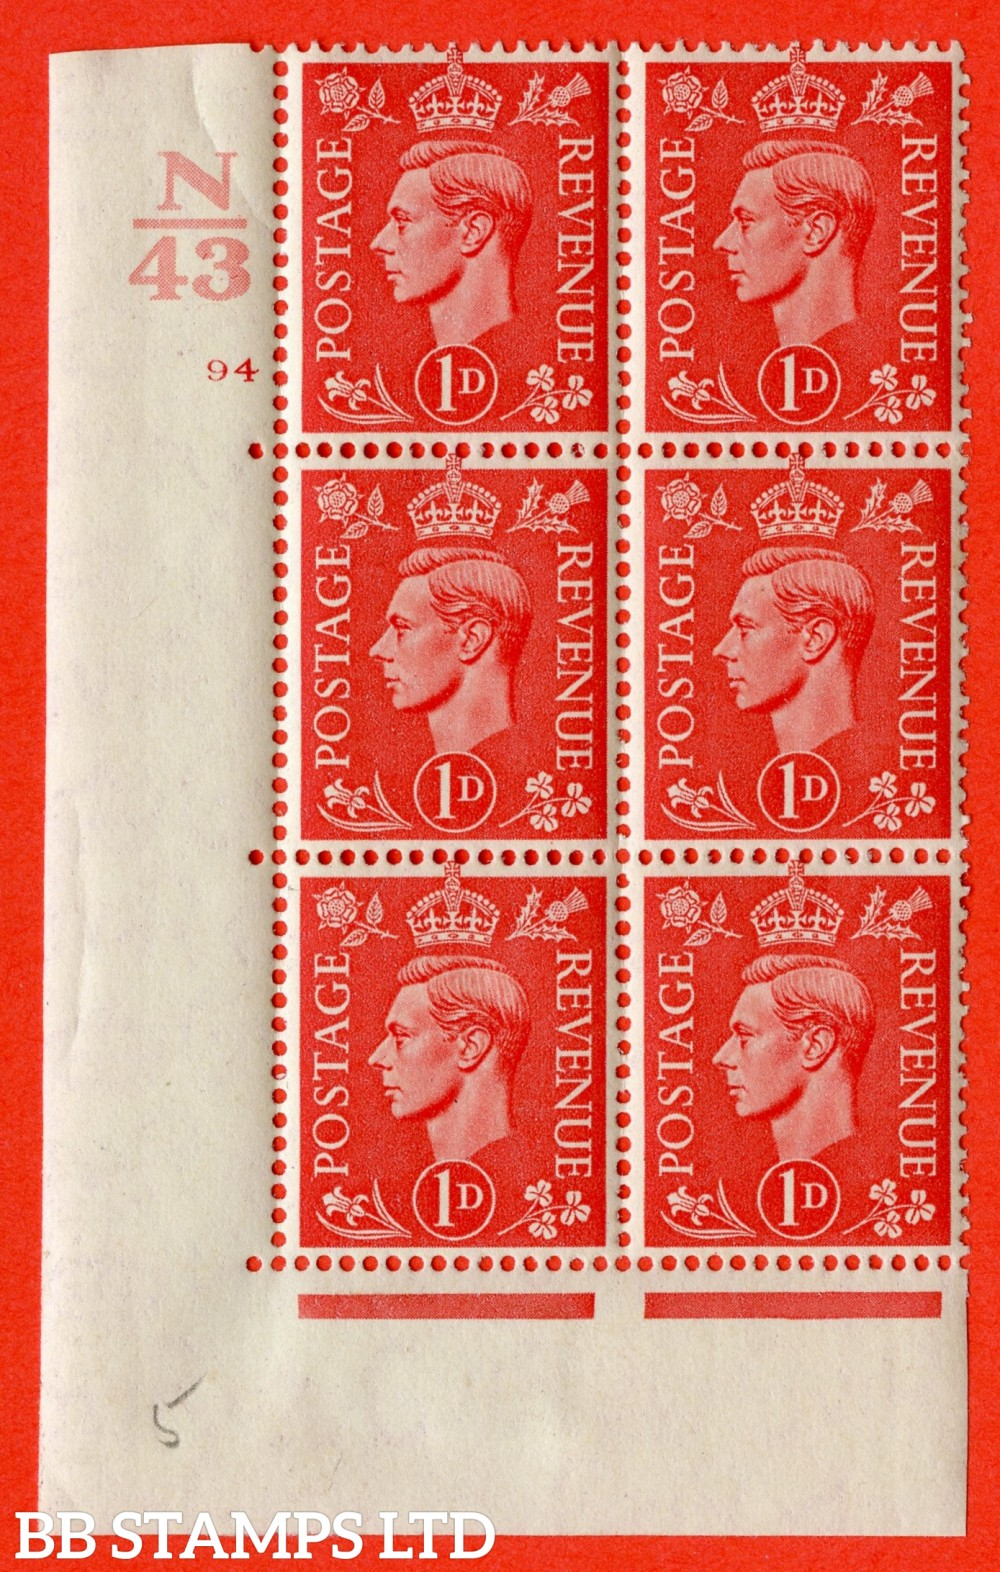 "SG. 486. Q5. 1d Pale scarlet. A fine lightly mounted mint "" Control N43 cylinder 94 no dot "" control block of 6 with perf type 5 E/I."